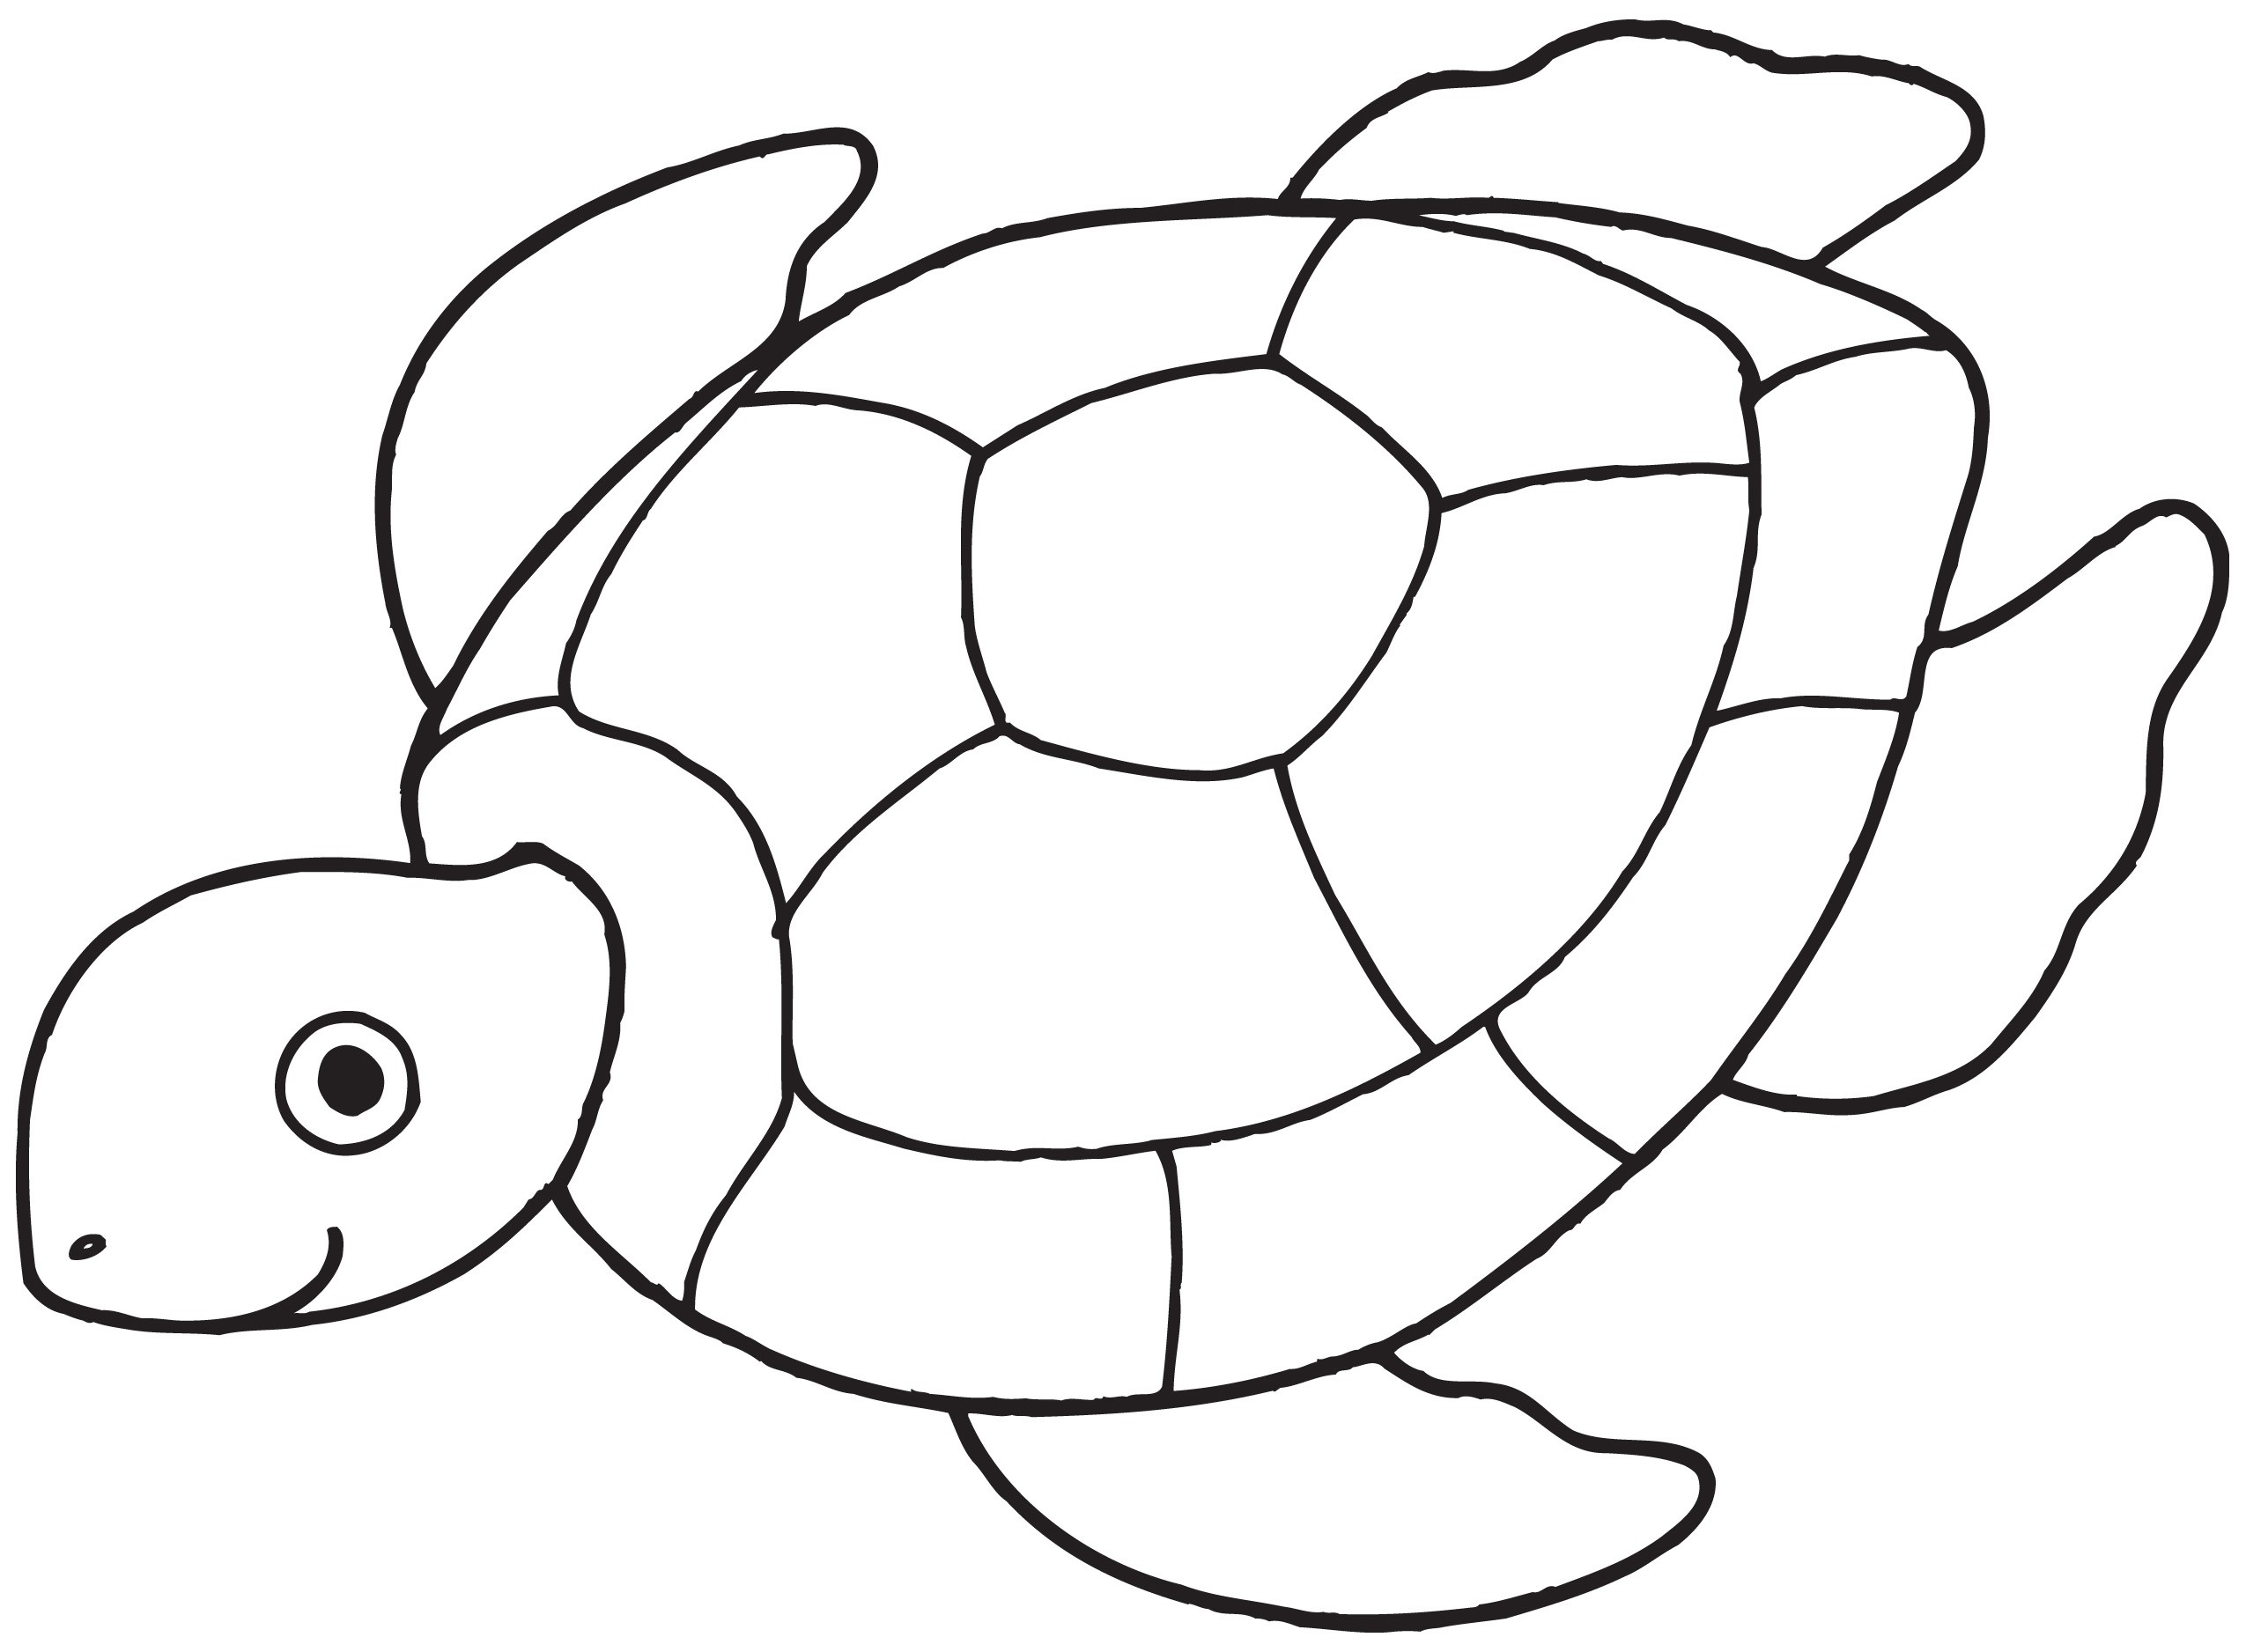 2550x1876 Turtle clip art black and white free clipart images 2